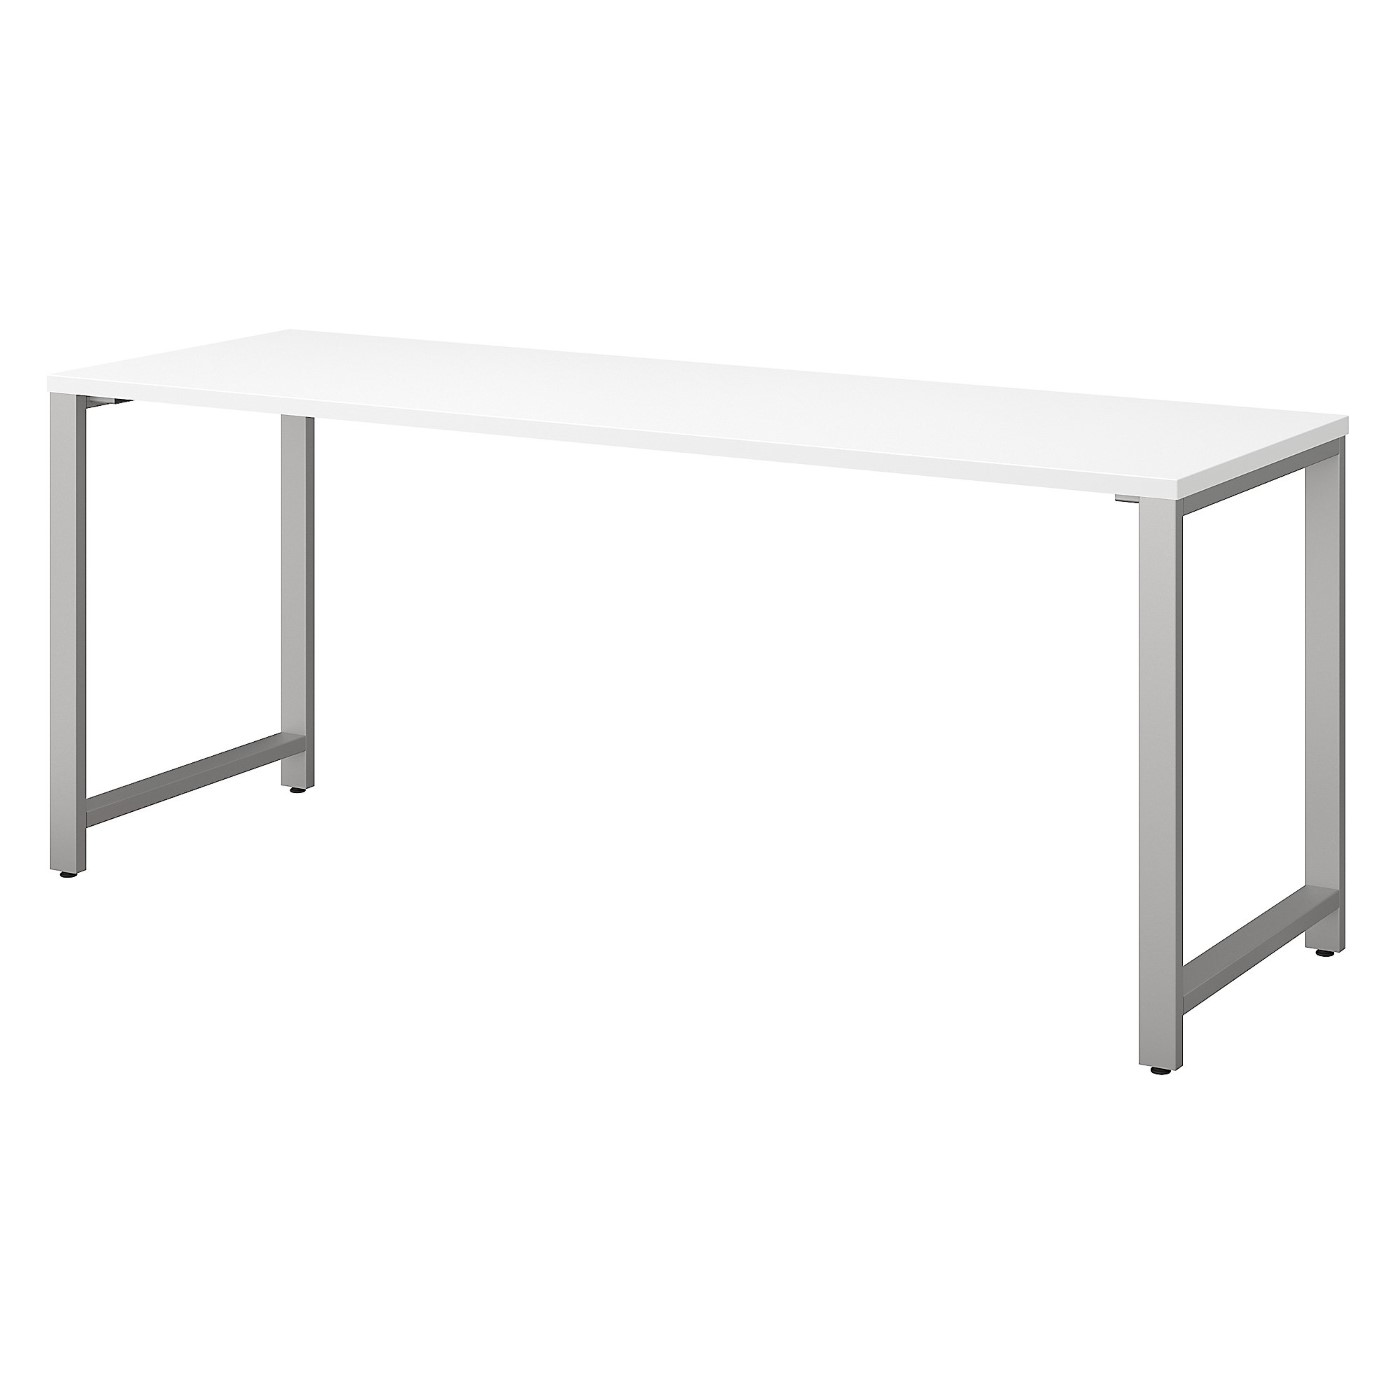 BUSH BUSINESS FURNITURE 400 SERIES 72W X 24D TABLE DESK WITH METAL LEGS. FREE SHIPPING SALE DEDUCT 10% MORE ENTER '10percent' IN COUPON CODE BOX WHILE CHECKING OUT.